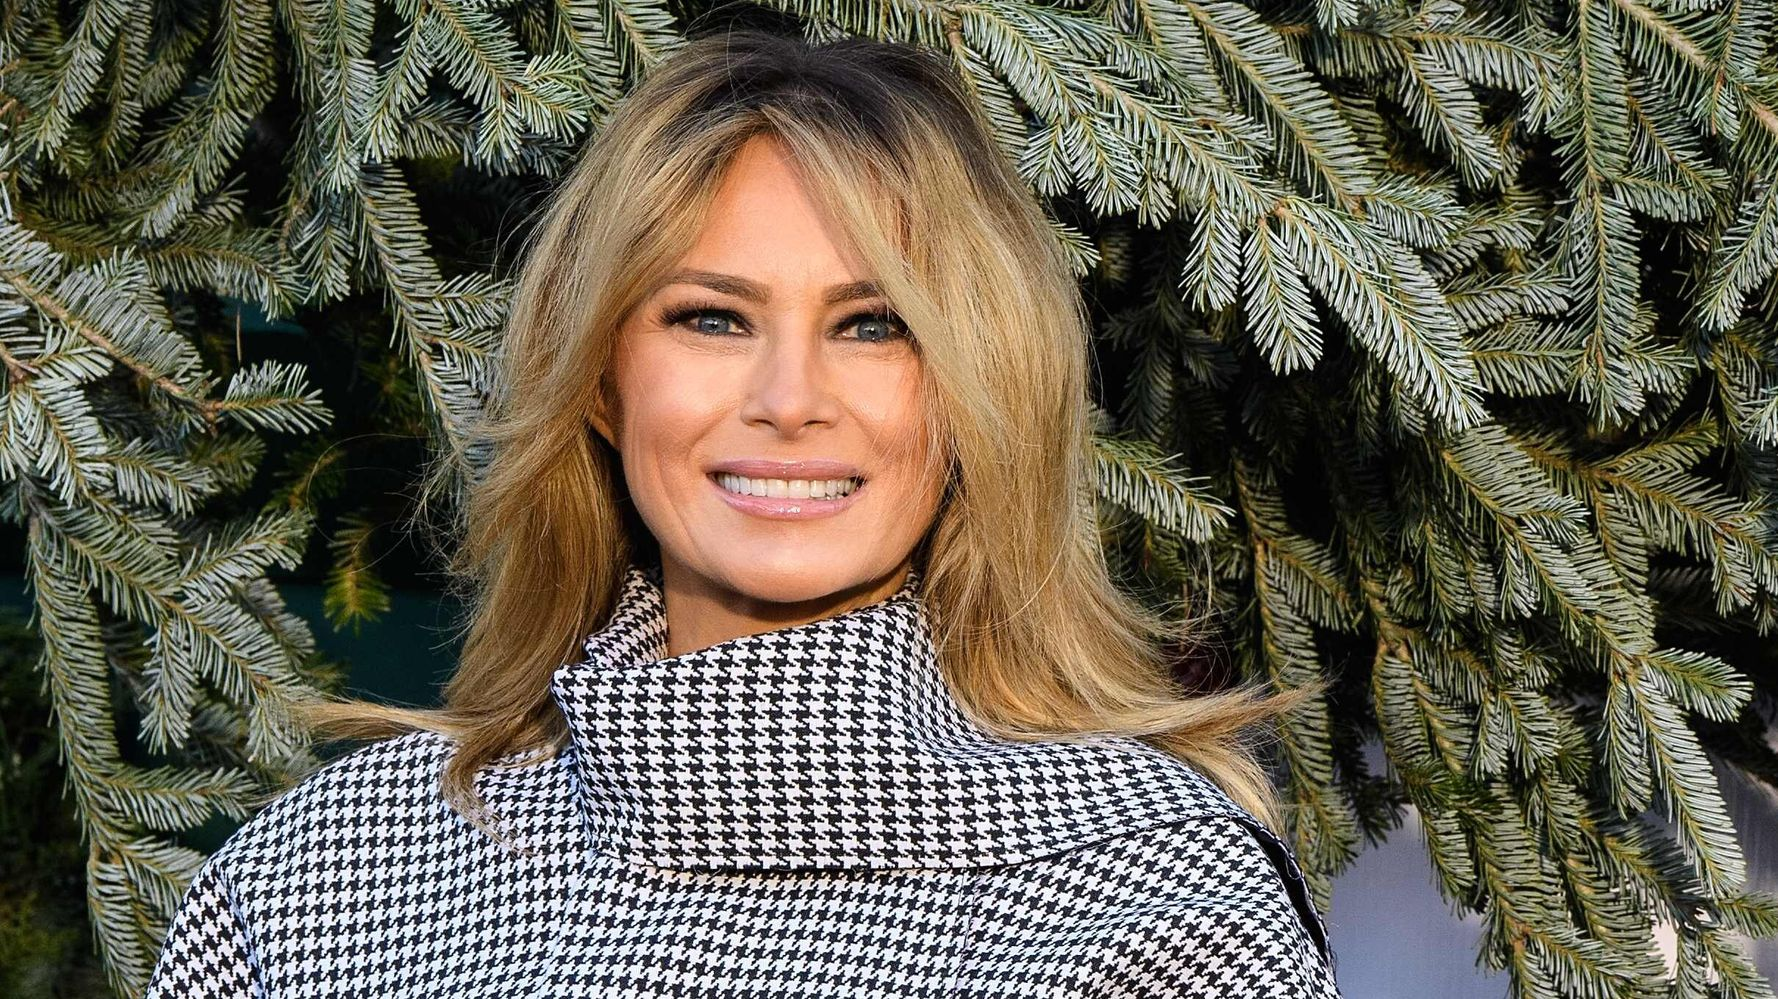 Twitter Users Mock Melania Trump's 'Who Gives A F**k About Christmas' Tree